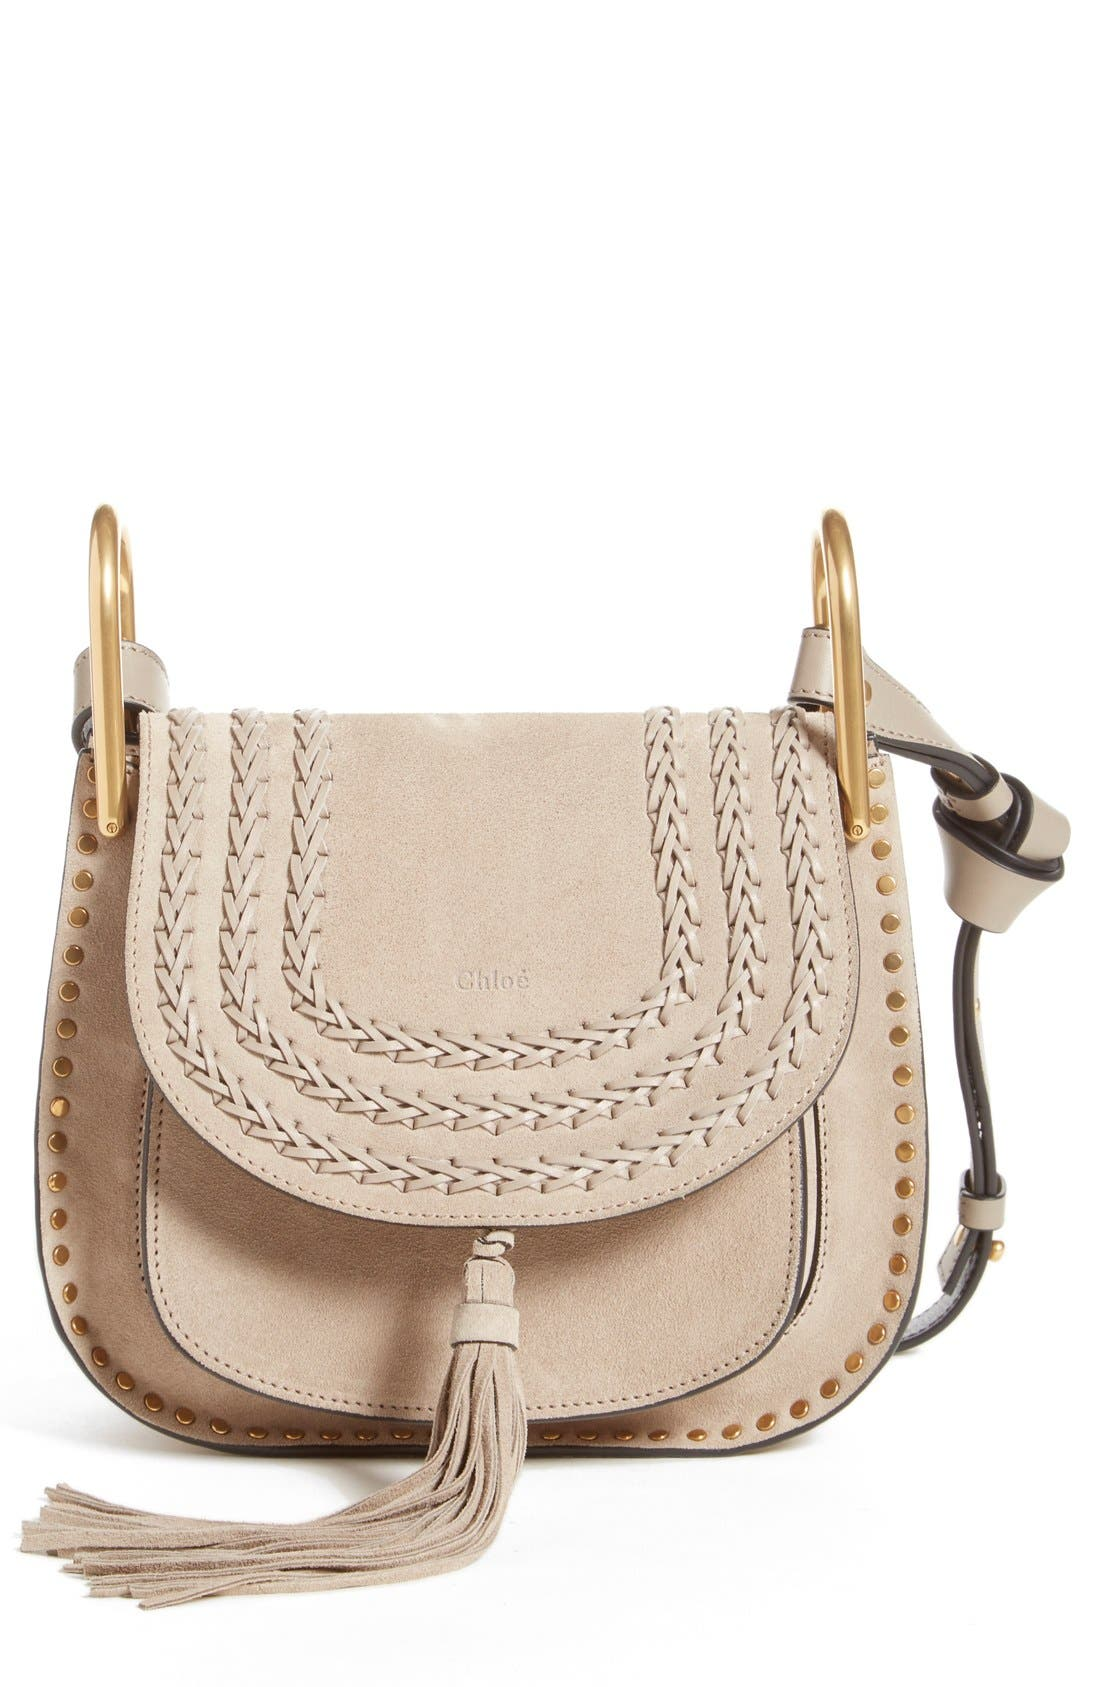 Chloé 'Small Hudson' Shoulder Bag